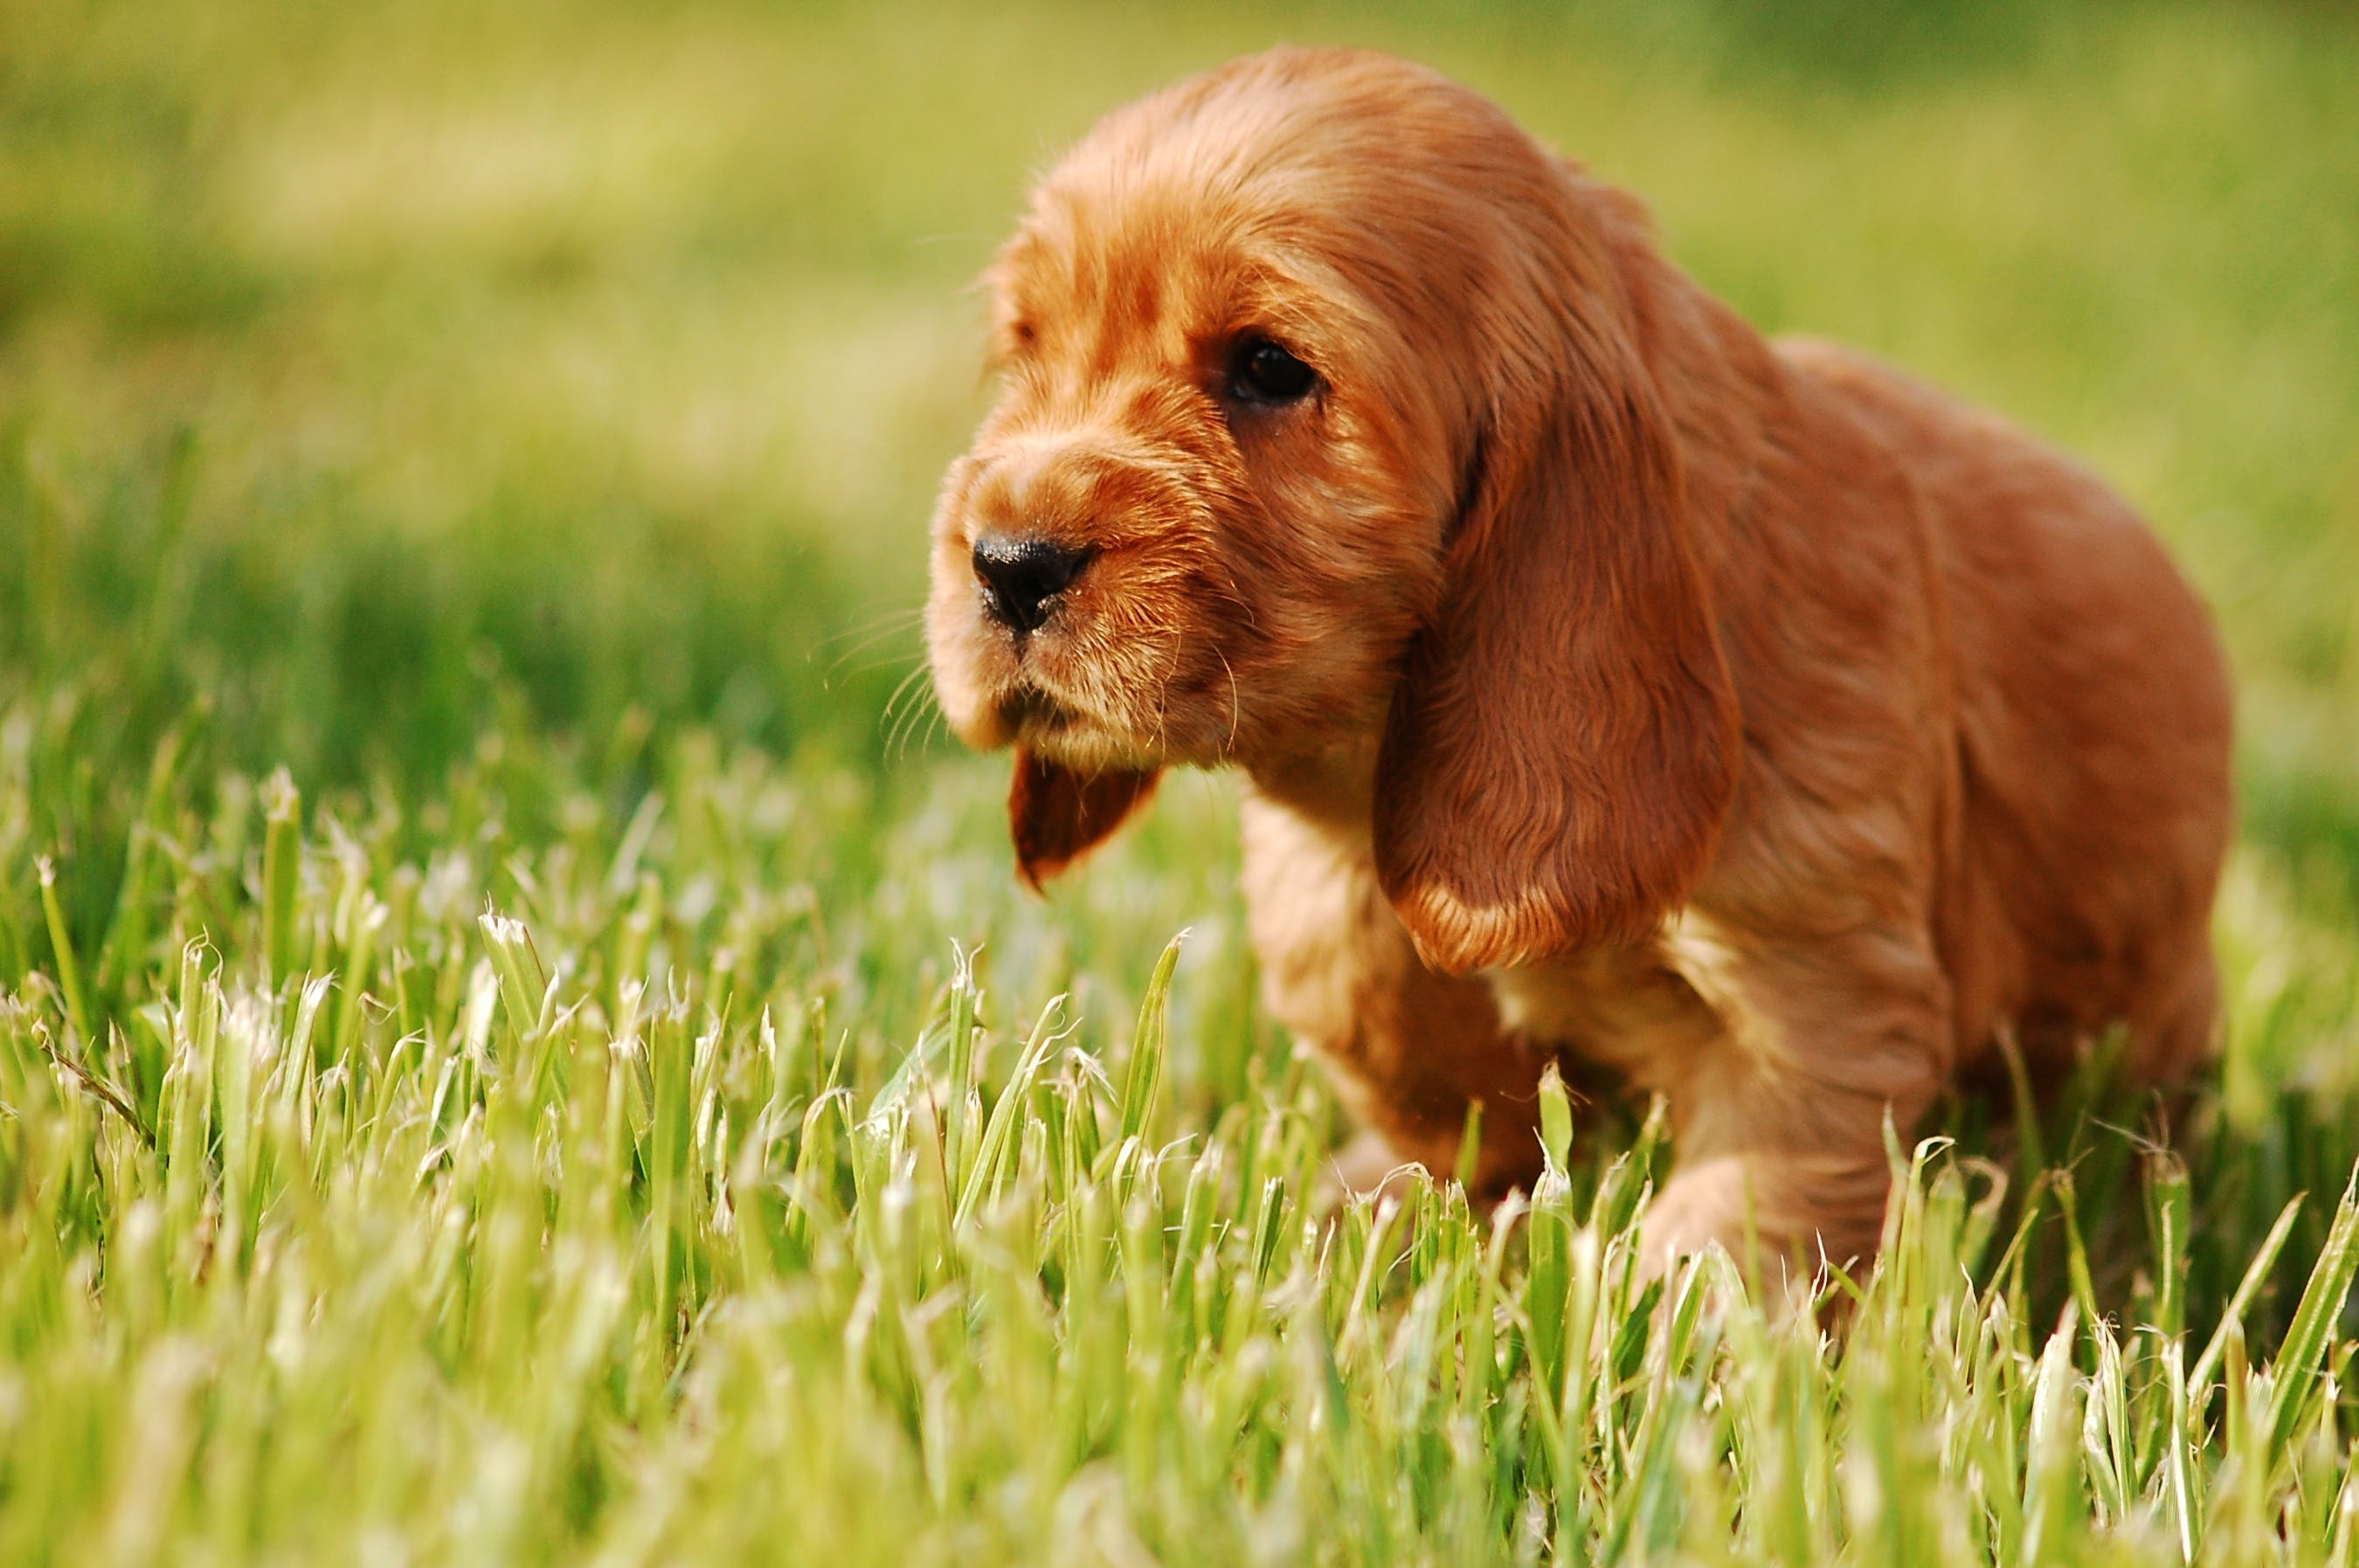 Free stock photo of dog, pet, cute, grass